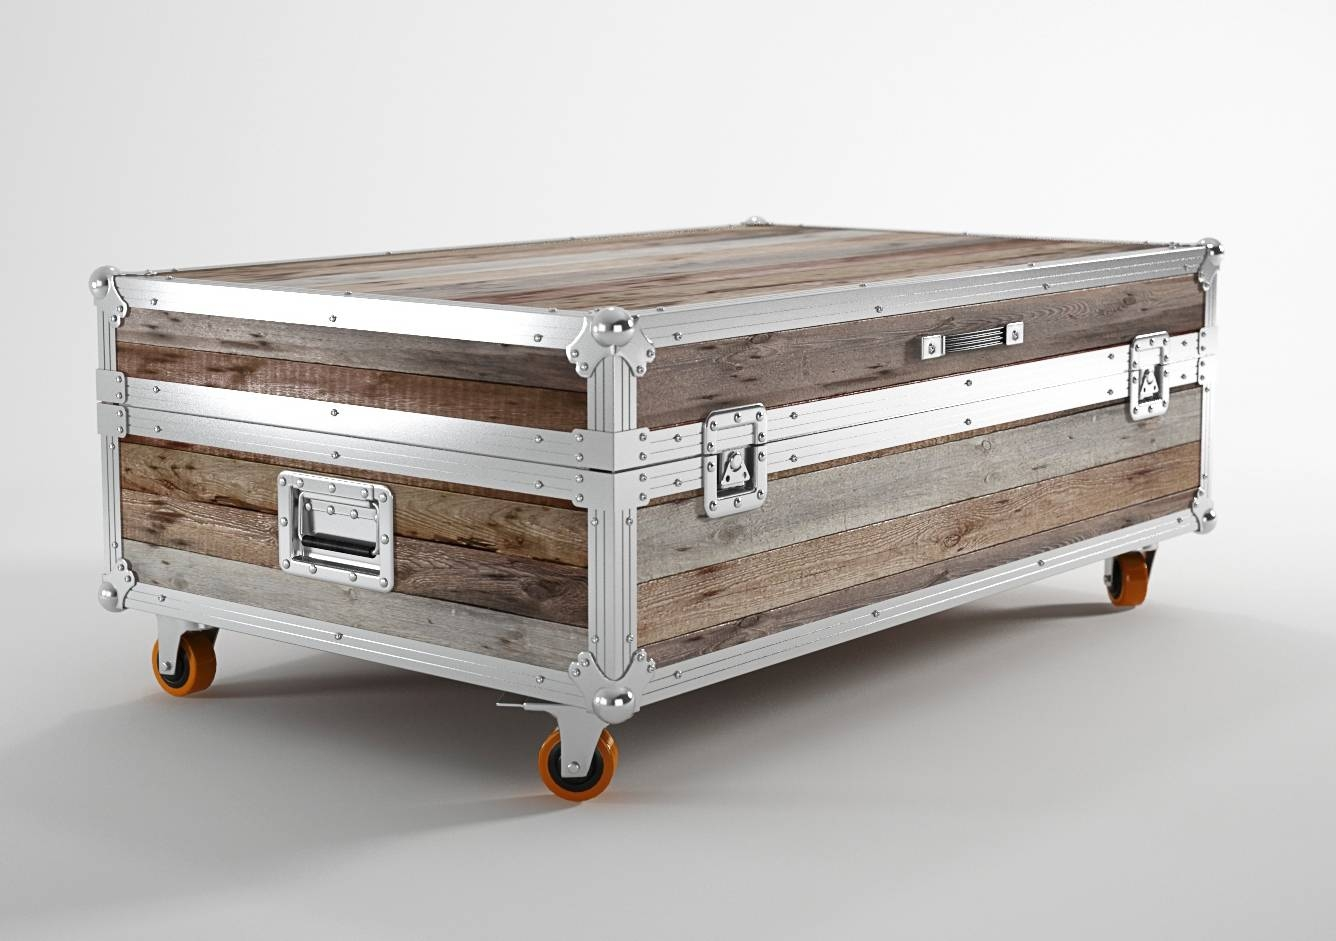 Metal Trunk Coffee Table | Idi Design within Stainless Steel Trunk Coffee Tables (Image 13 of 30)